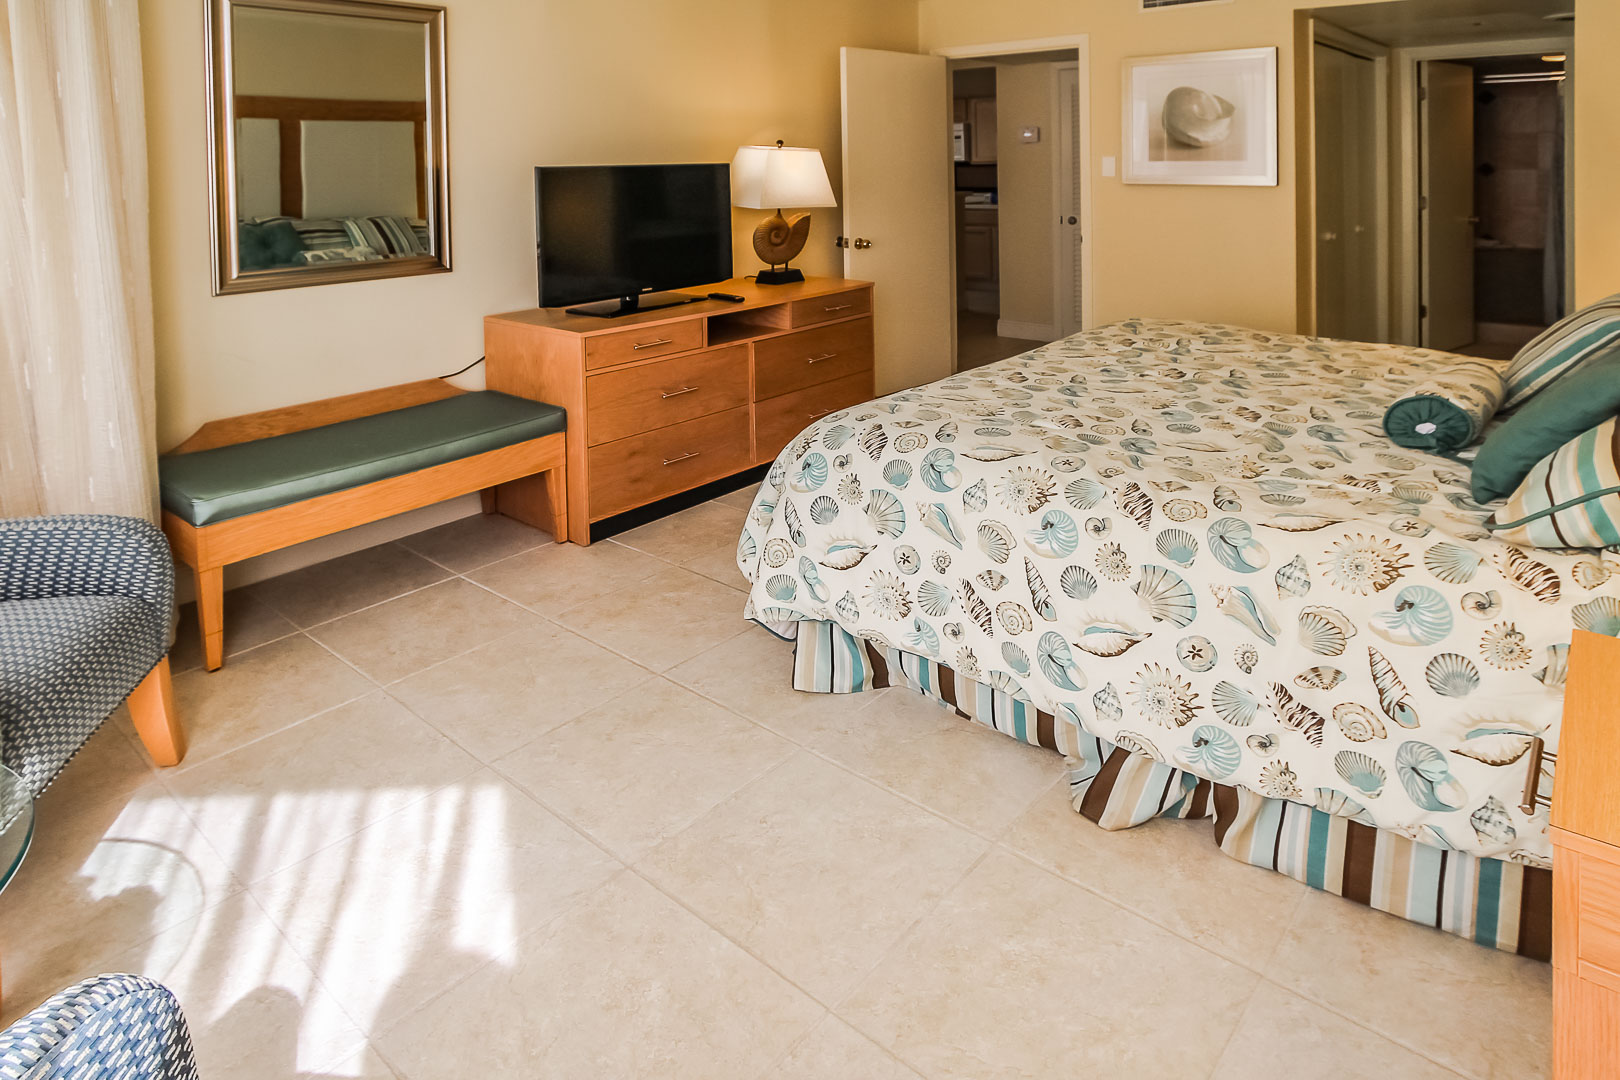 A charming master bedroom at VRI's Royale Beach Tennis Club in Texas.